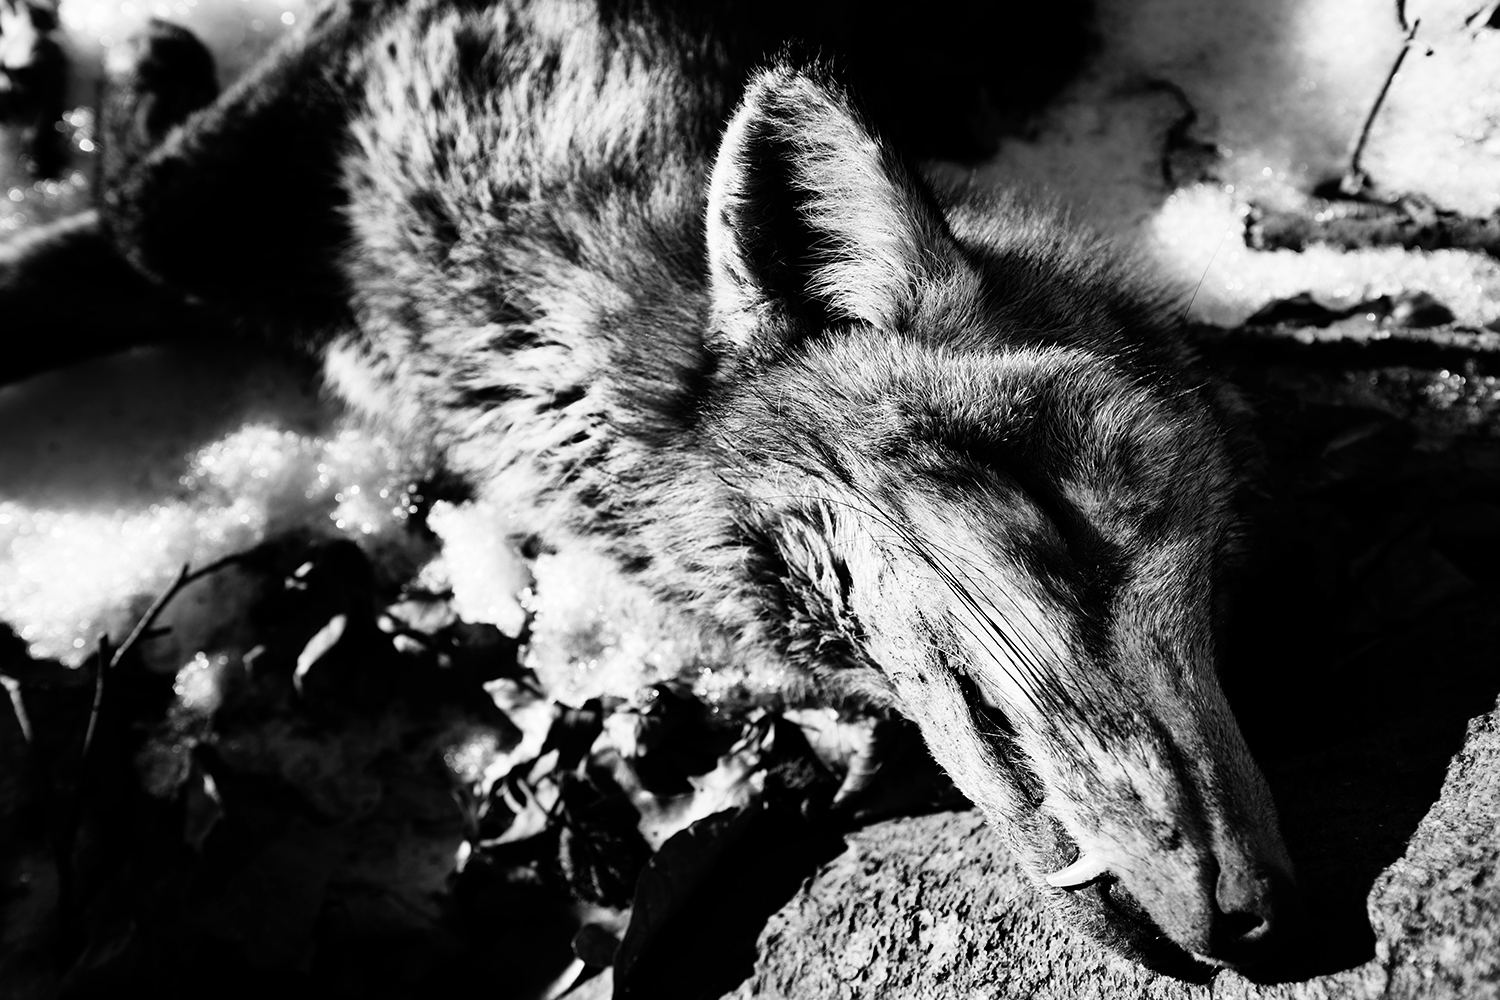 Animals by Laurent Orseau #37